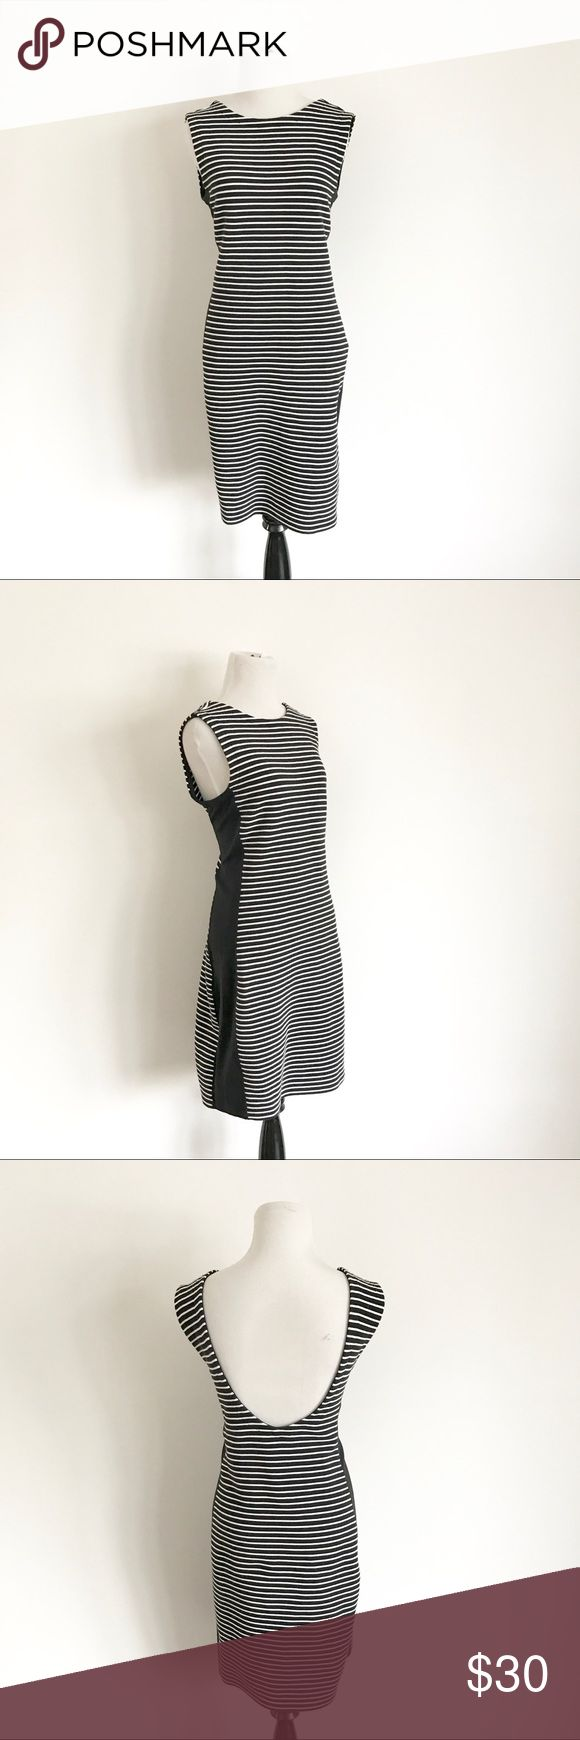 Athleta Striped Bodycon Dress Black and white striped fitted bodycon dress from Athleta. Thick fabric, great quality, super flattering on! Athleta Dresses